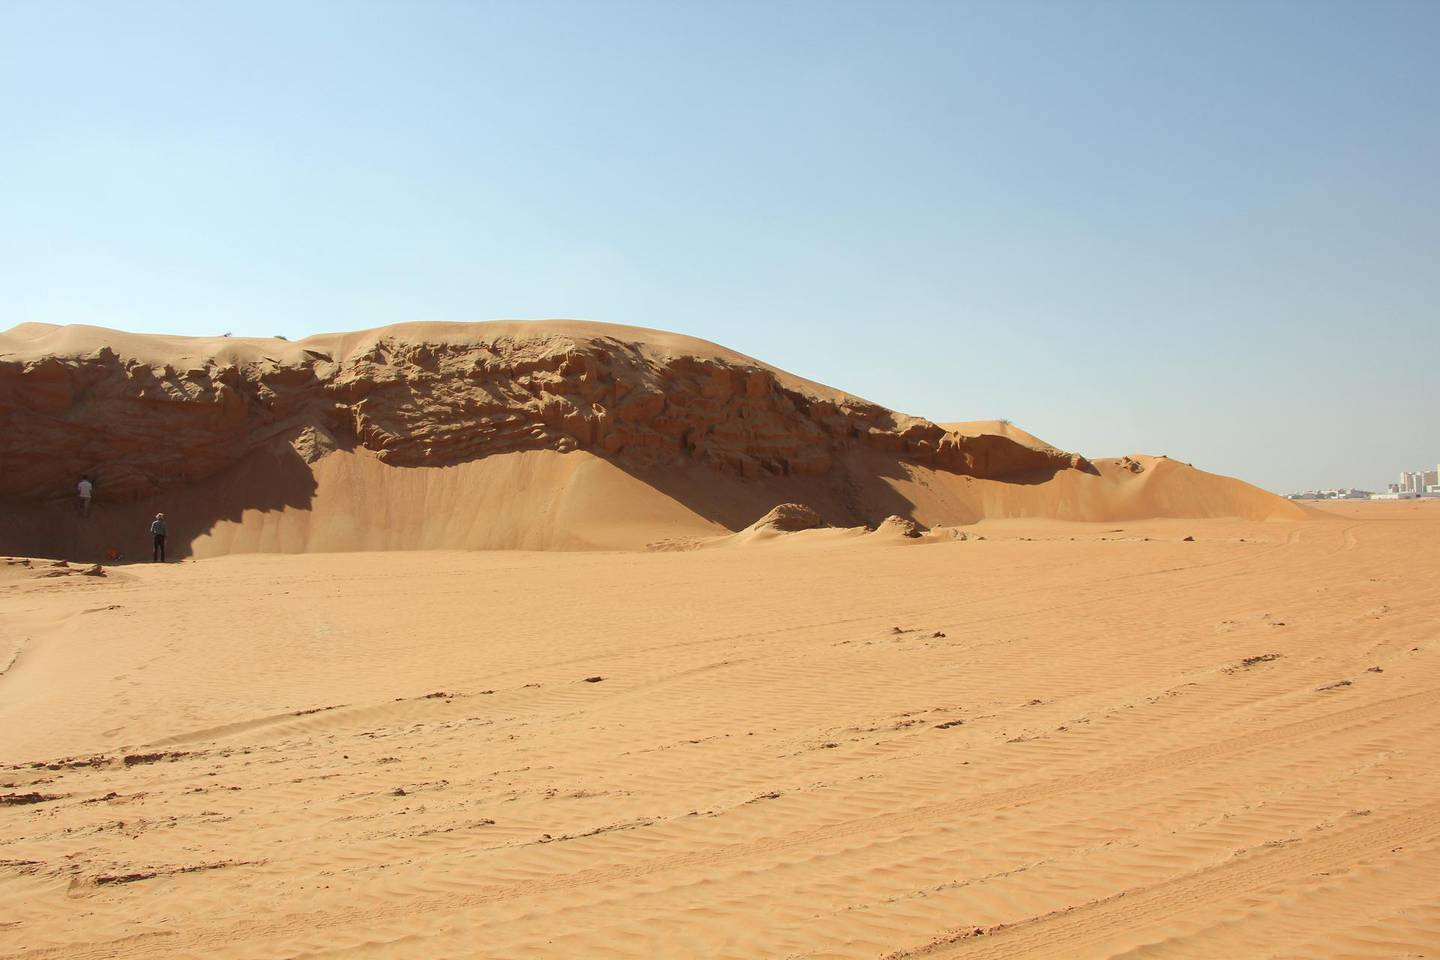 Sand dunes on the RAK/Umm Al Quwain border. Samples of sand are taken at various depths and, from this, the researchers can build up a picture of how the climate changed during geological history. The samples were taken from a remaining area of dune that is due to be levelled so that development work can take place. Courtsey: Professor David Thomas